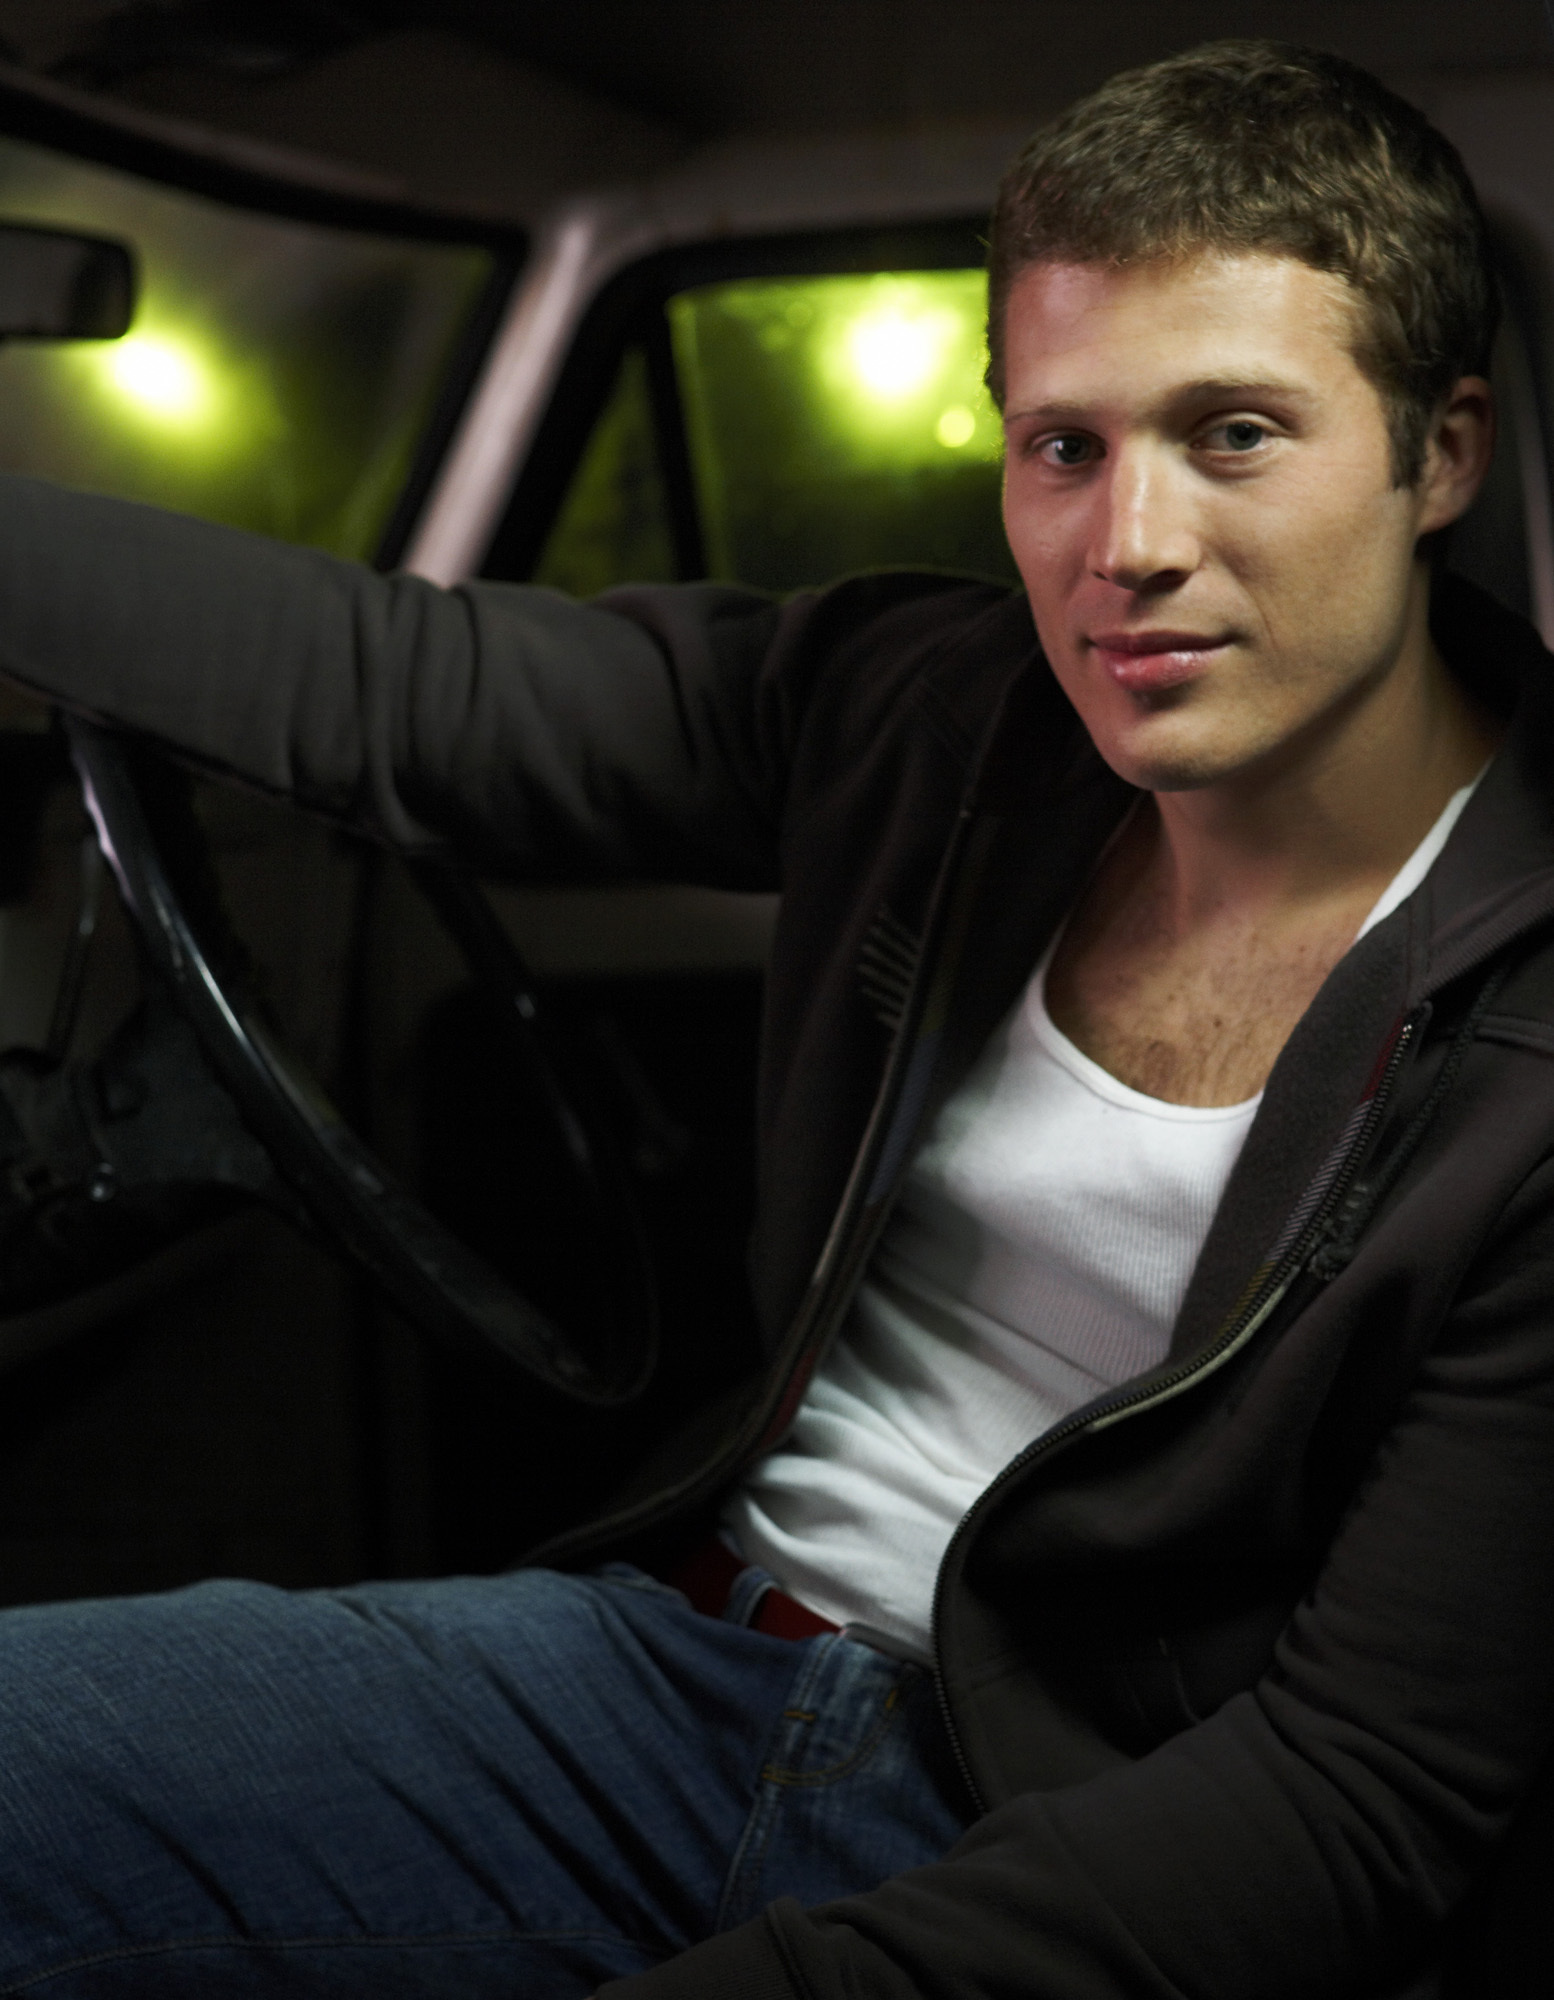 All Car Wallpaper Download Zach Gilford Images Zach Hd Wallpaper And Background